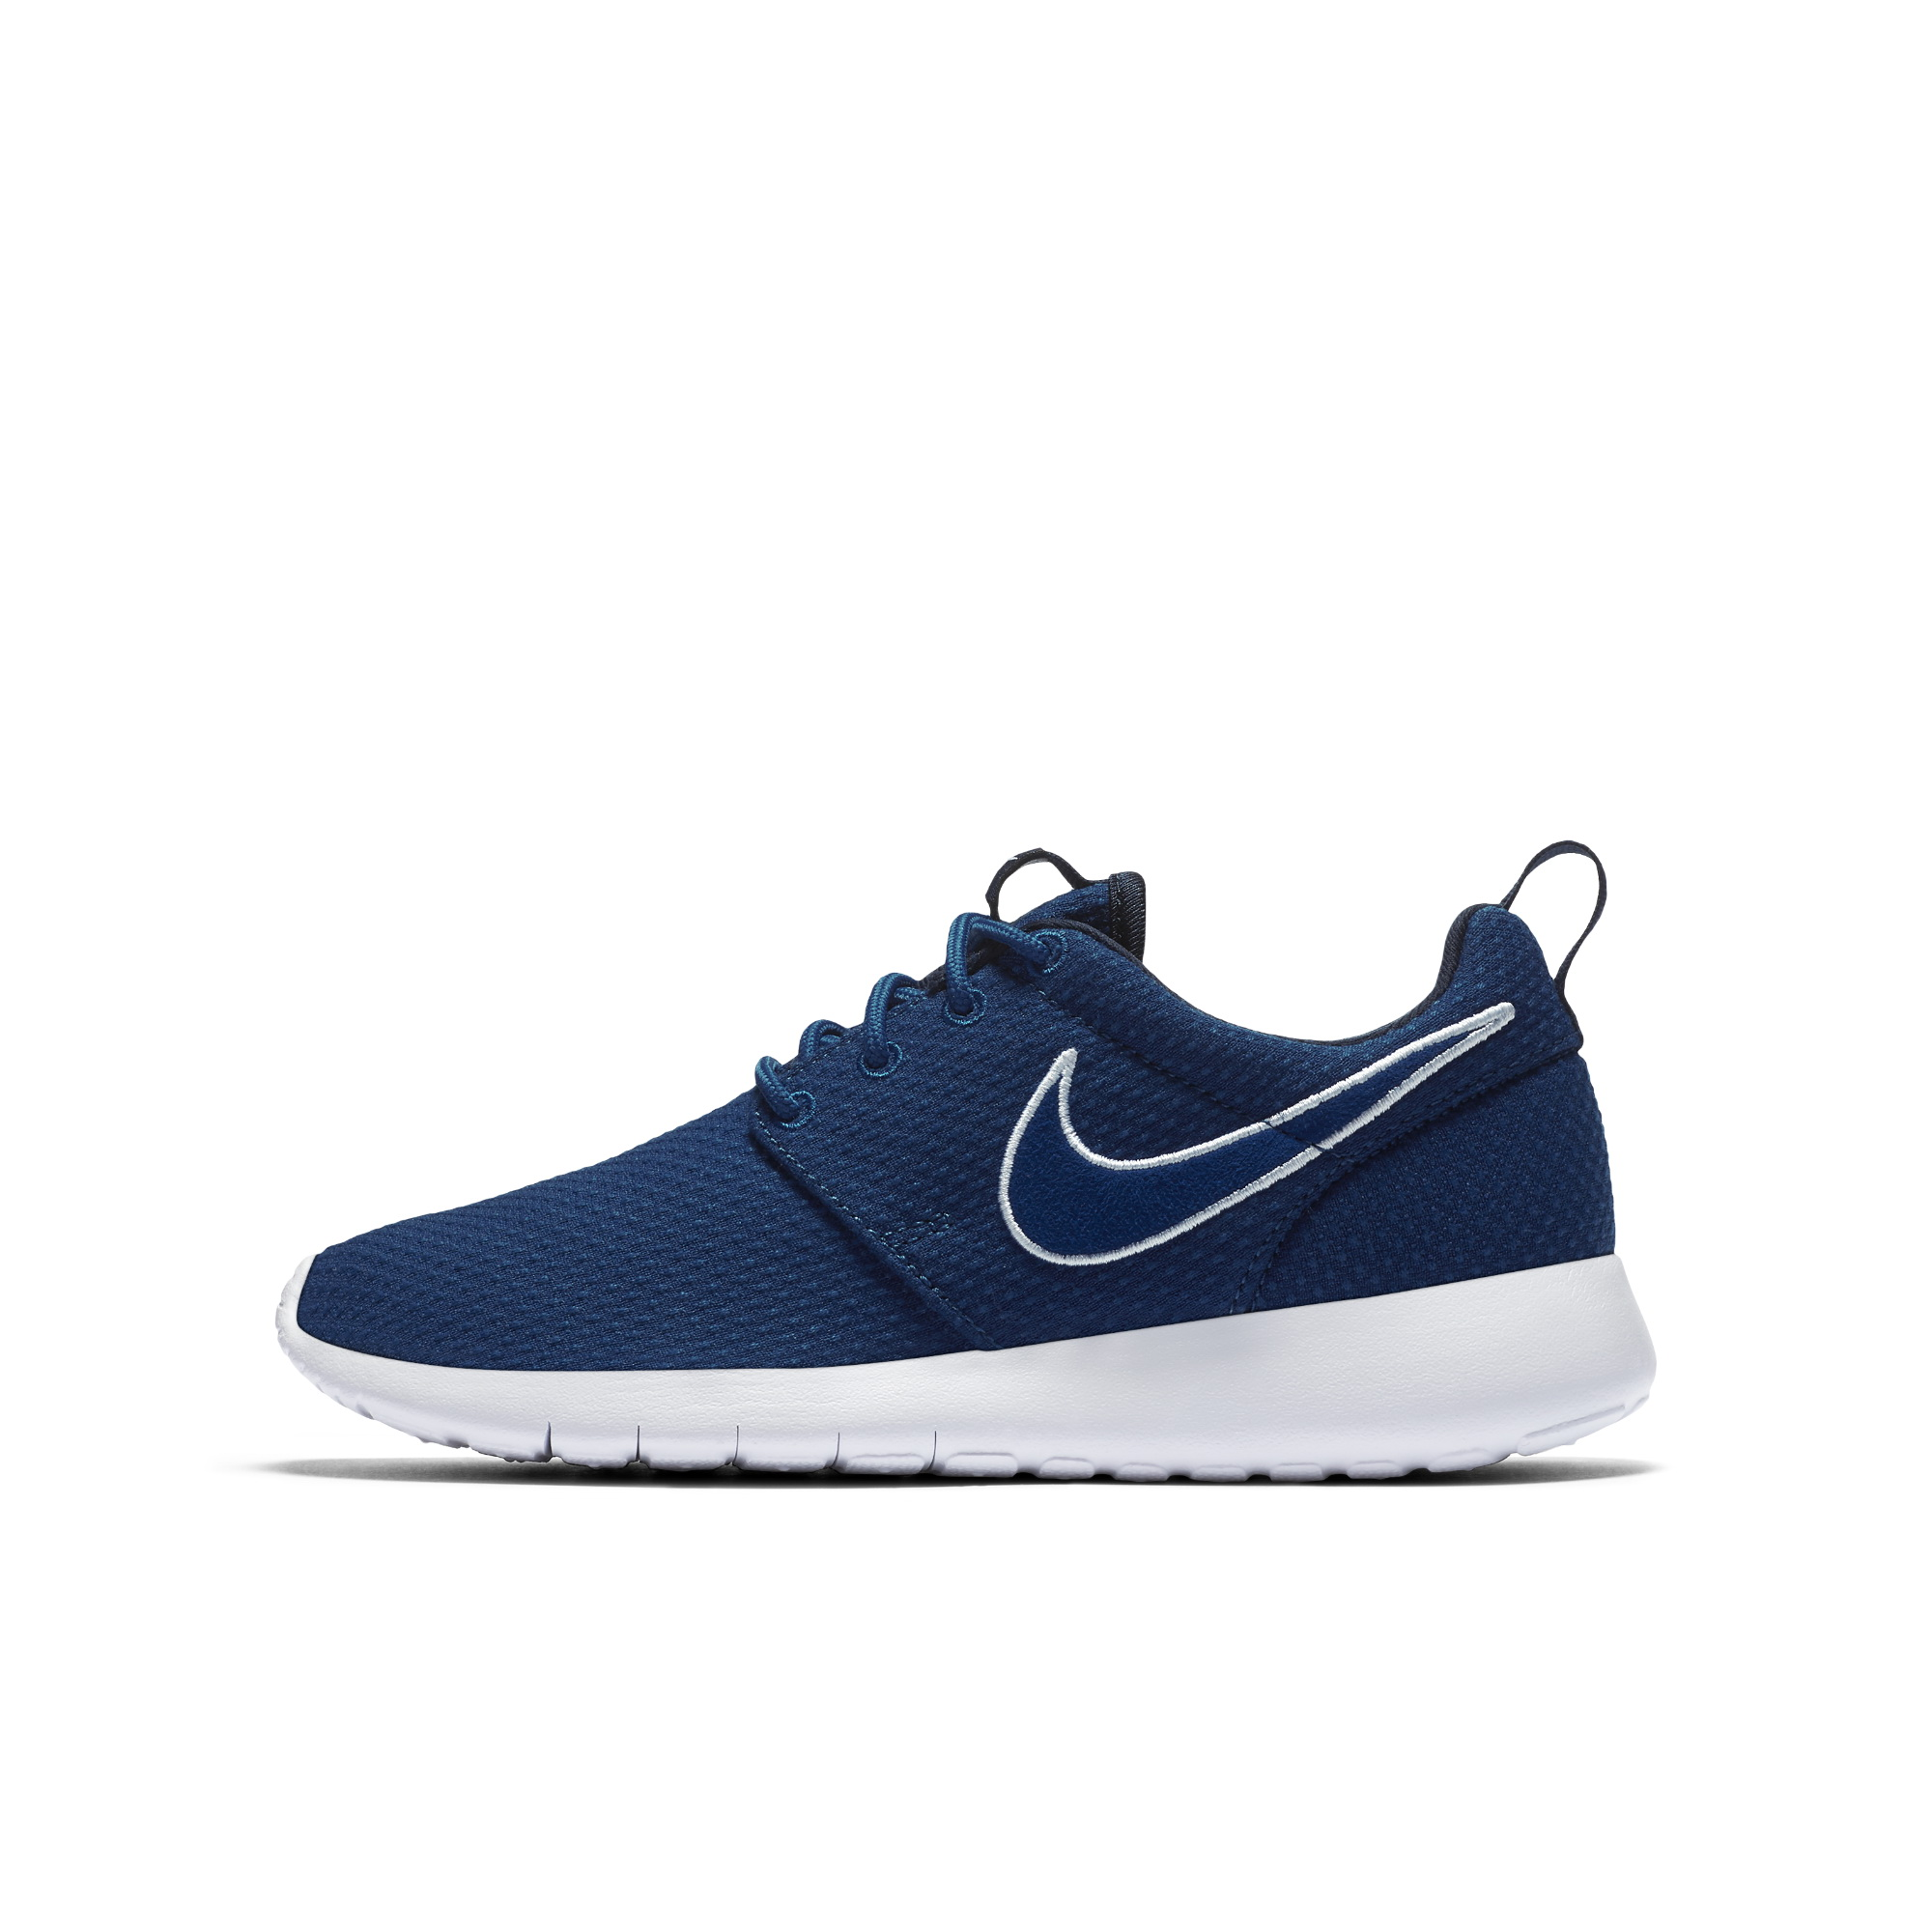 NIKE ROSHE ONE (GS) Boys RUNNING Sneakers 599728-426